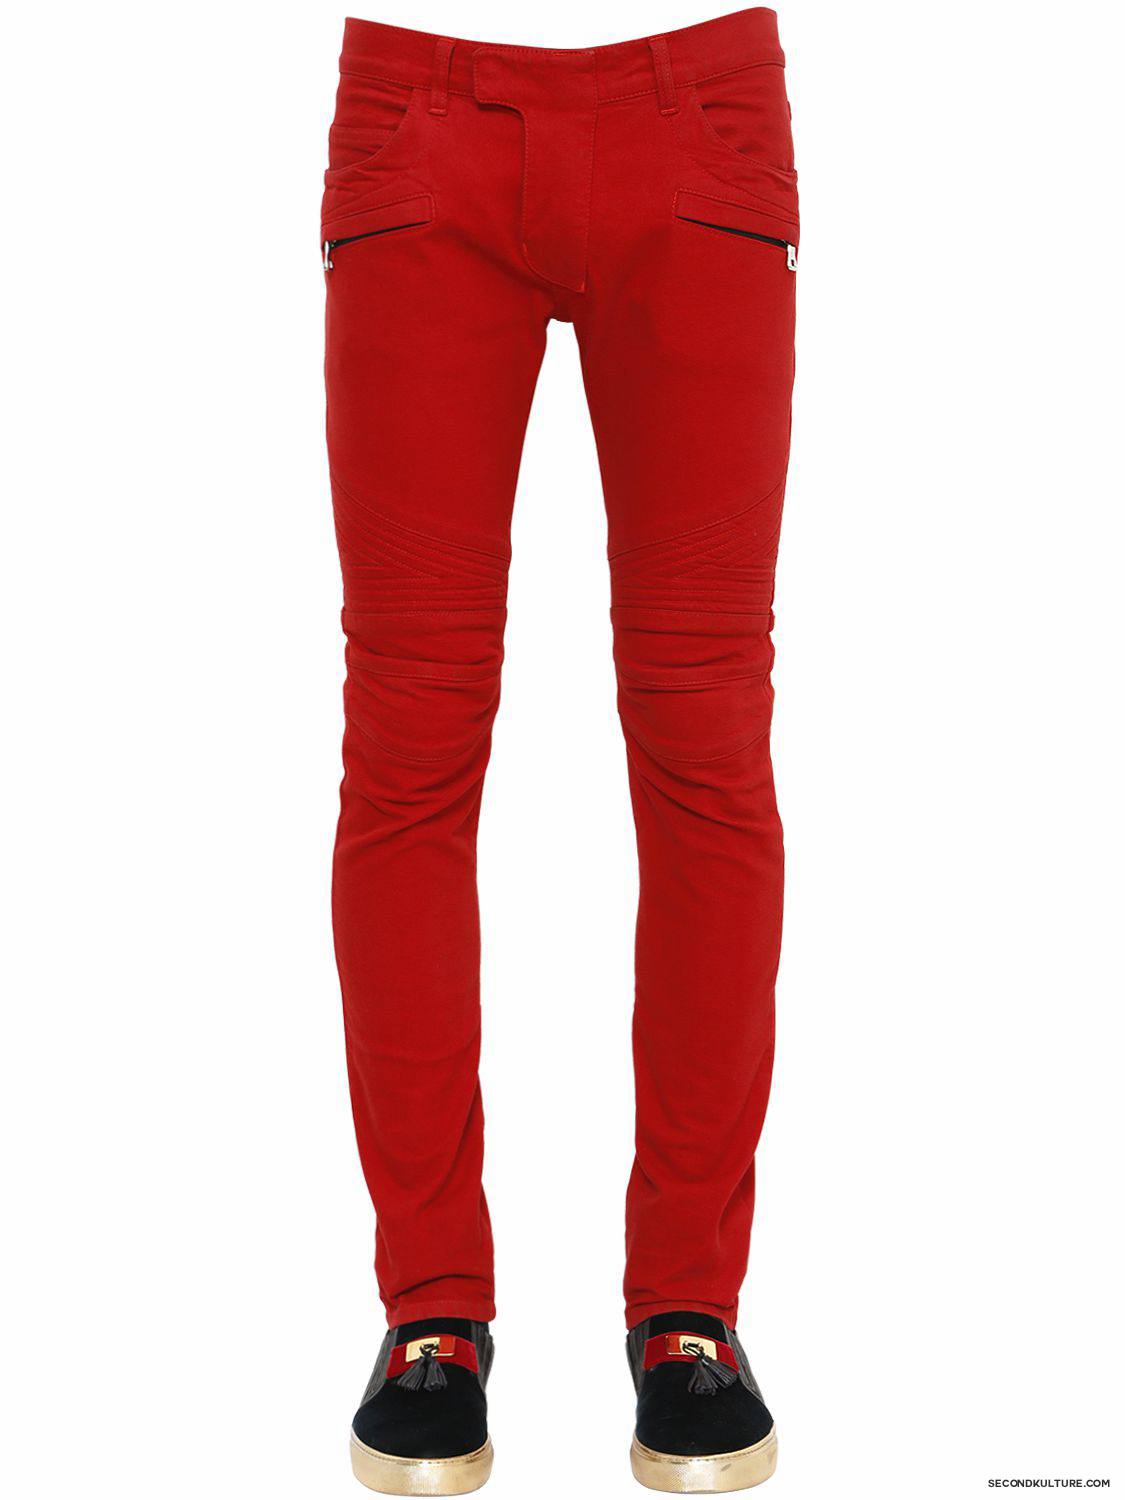 Balmain-16cm-Red-Chevron-Quilted-Stretch-Denim-Biker-Jeans-Fall-Winter-2015-1